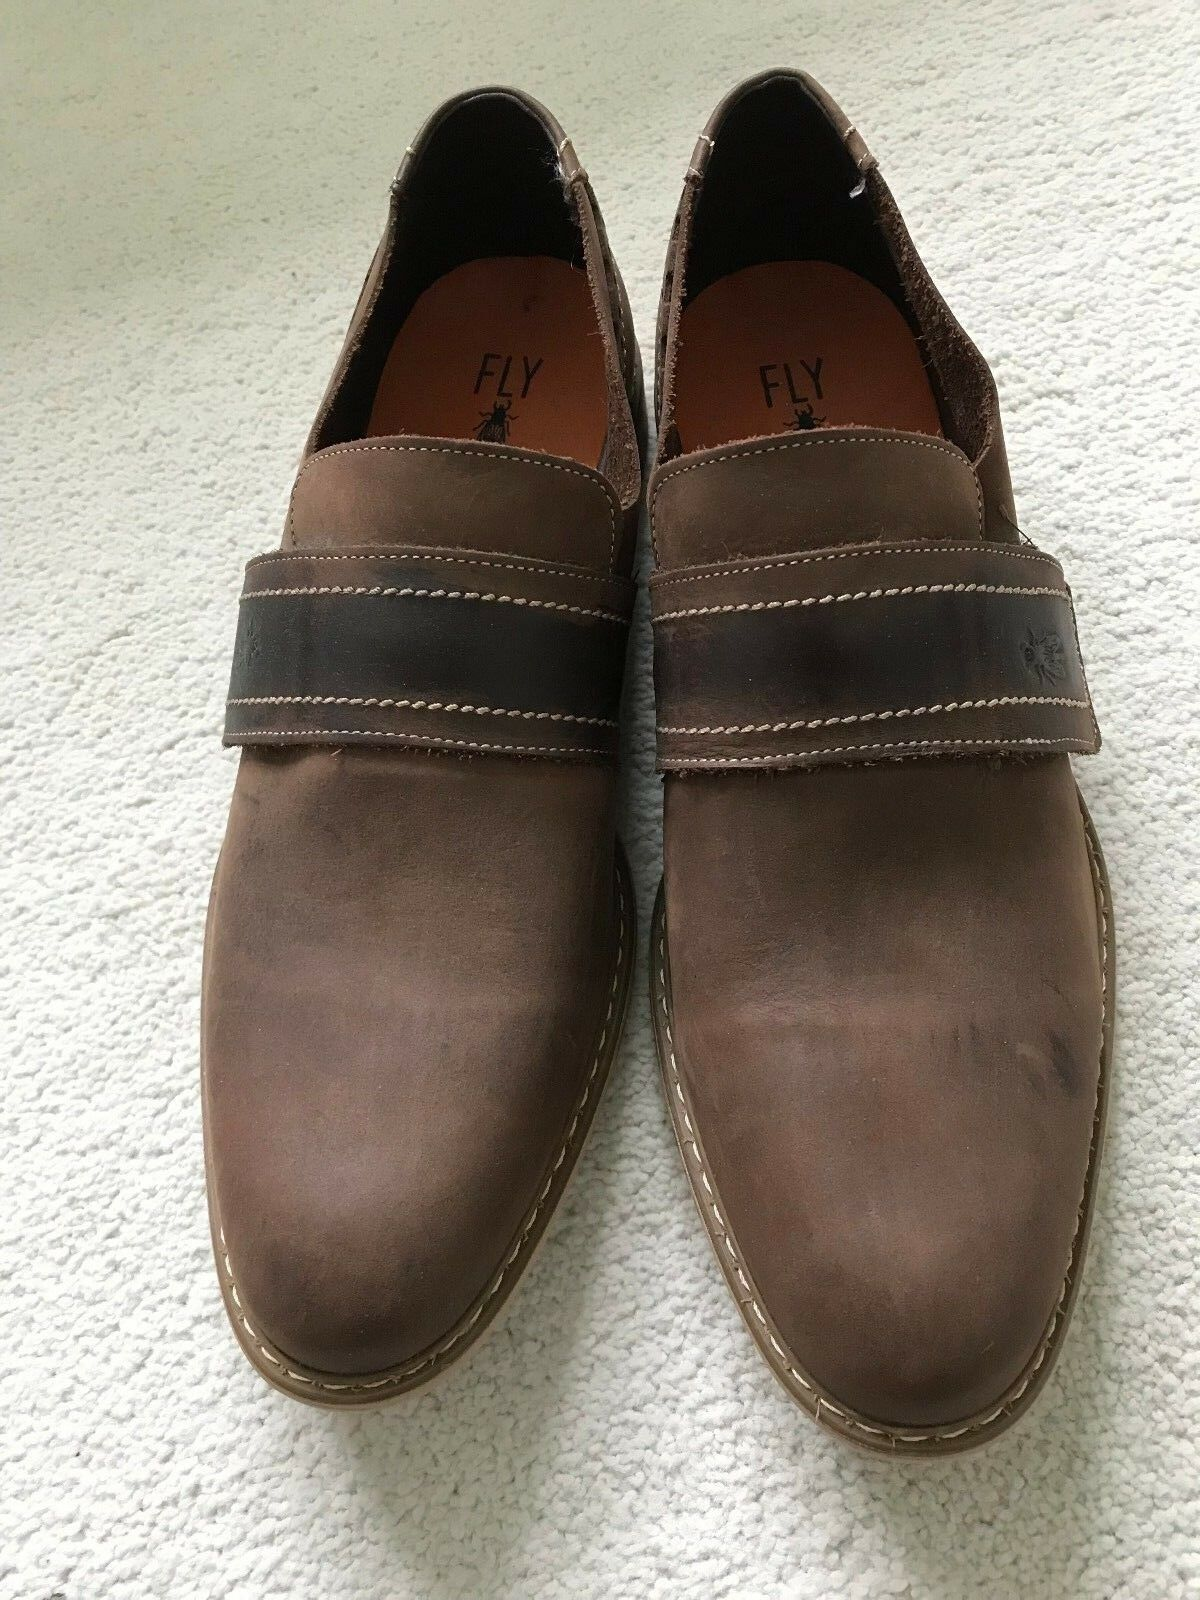 FLY London Men Loafer in Dark Brown with Square Toe  - size 10.5   45